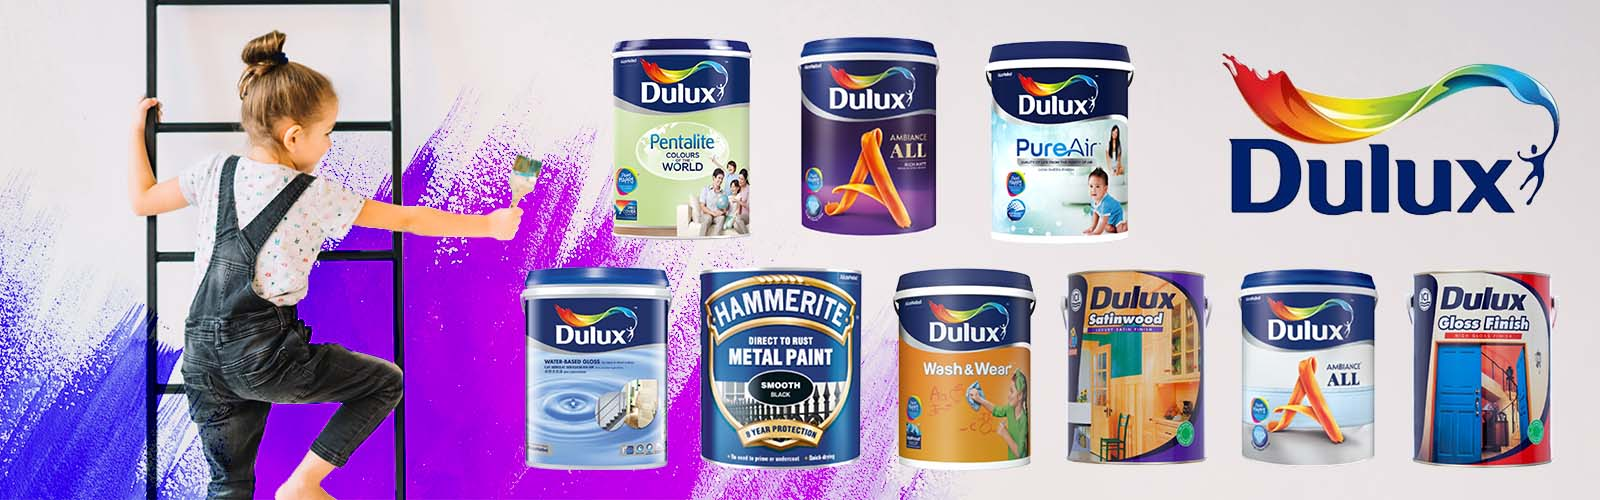 Dulux Paint Shop - Singapore's Most Popular Paint Store